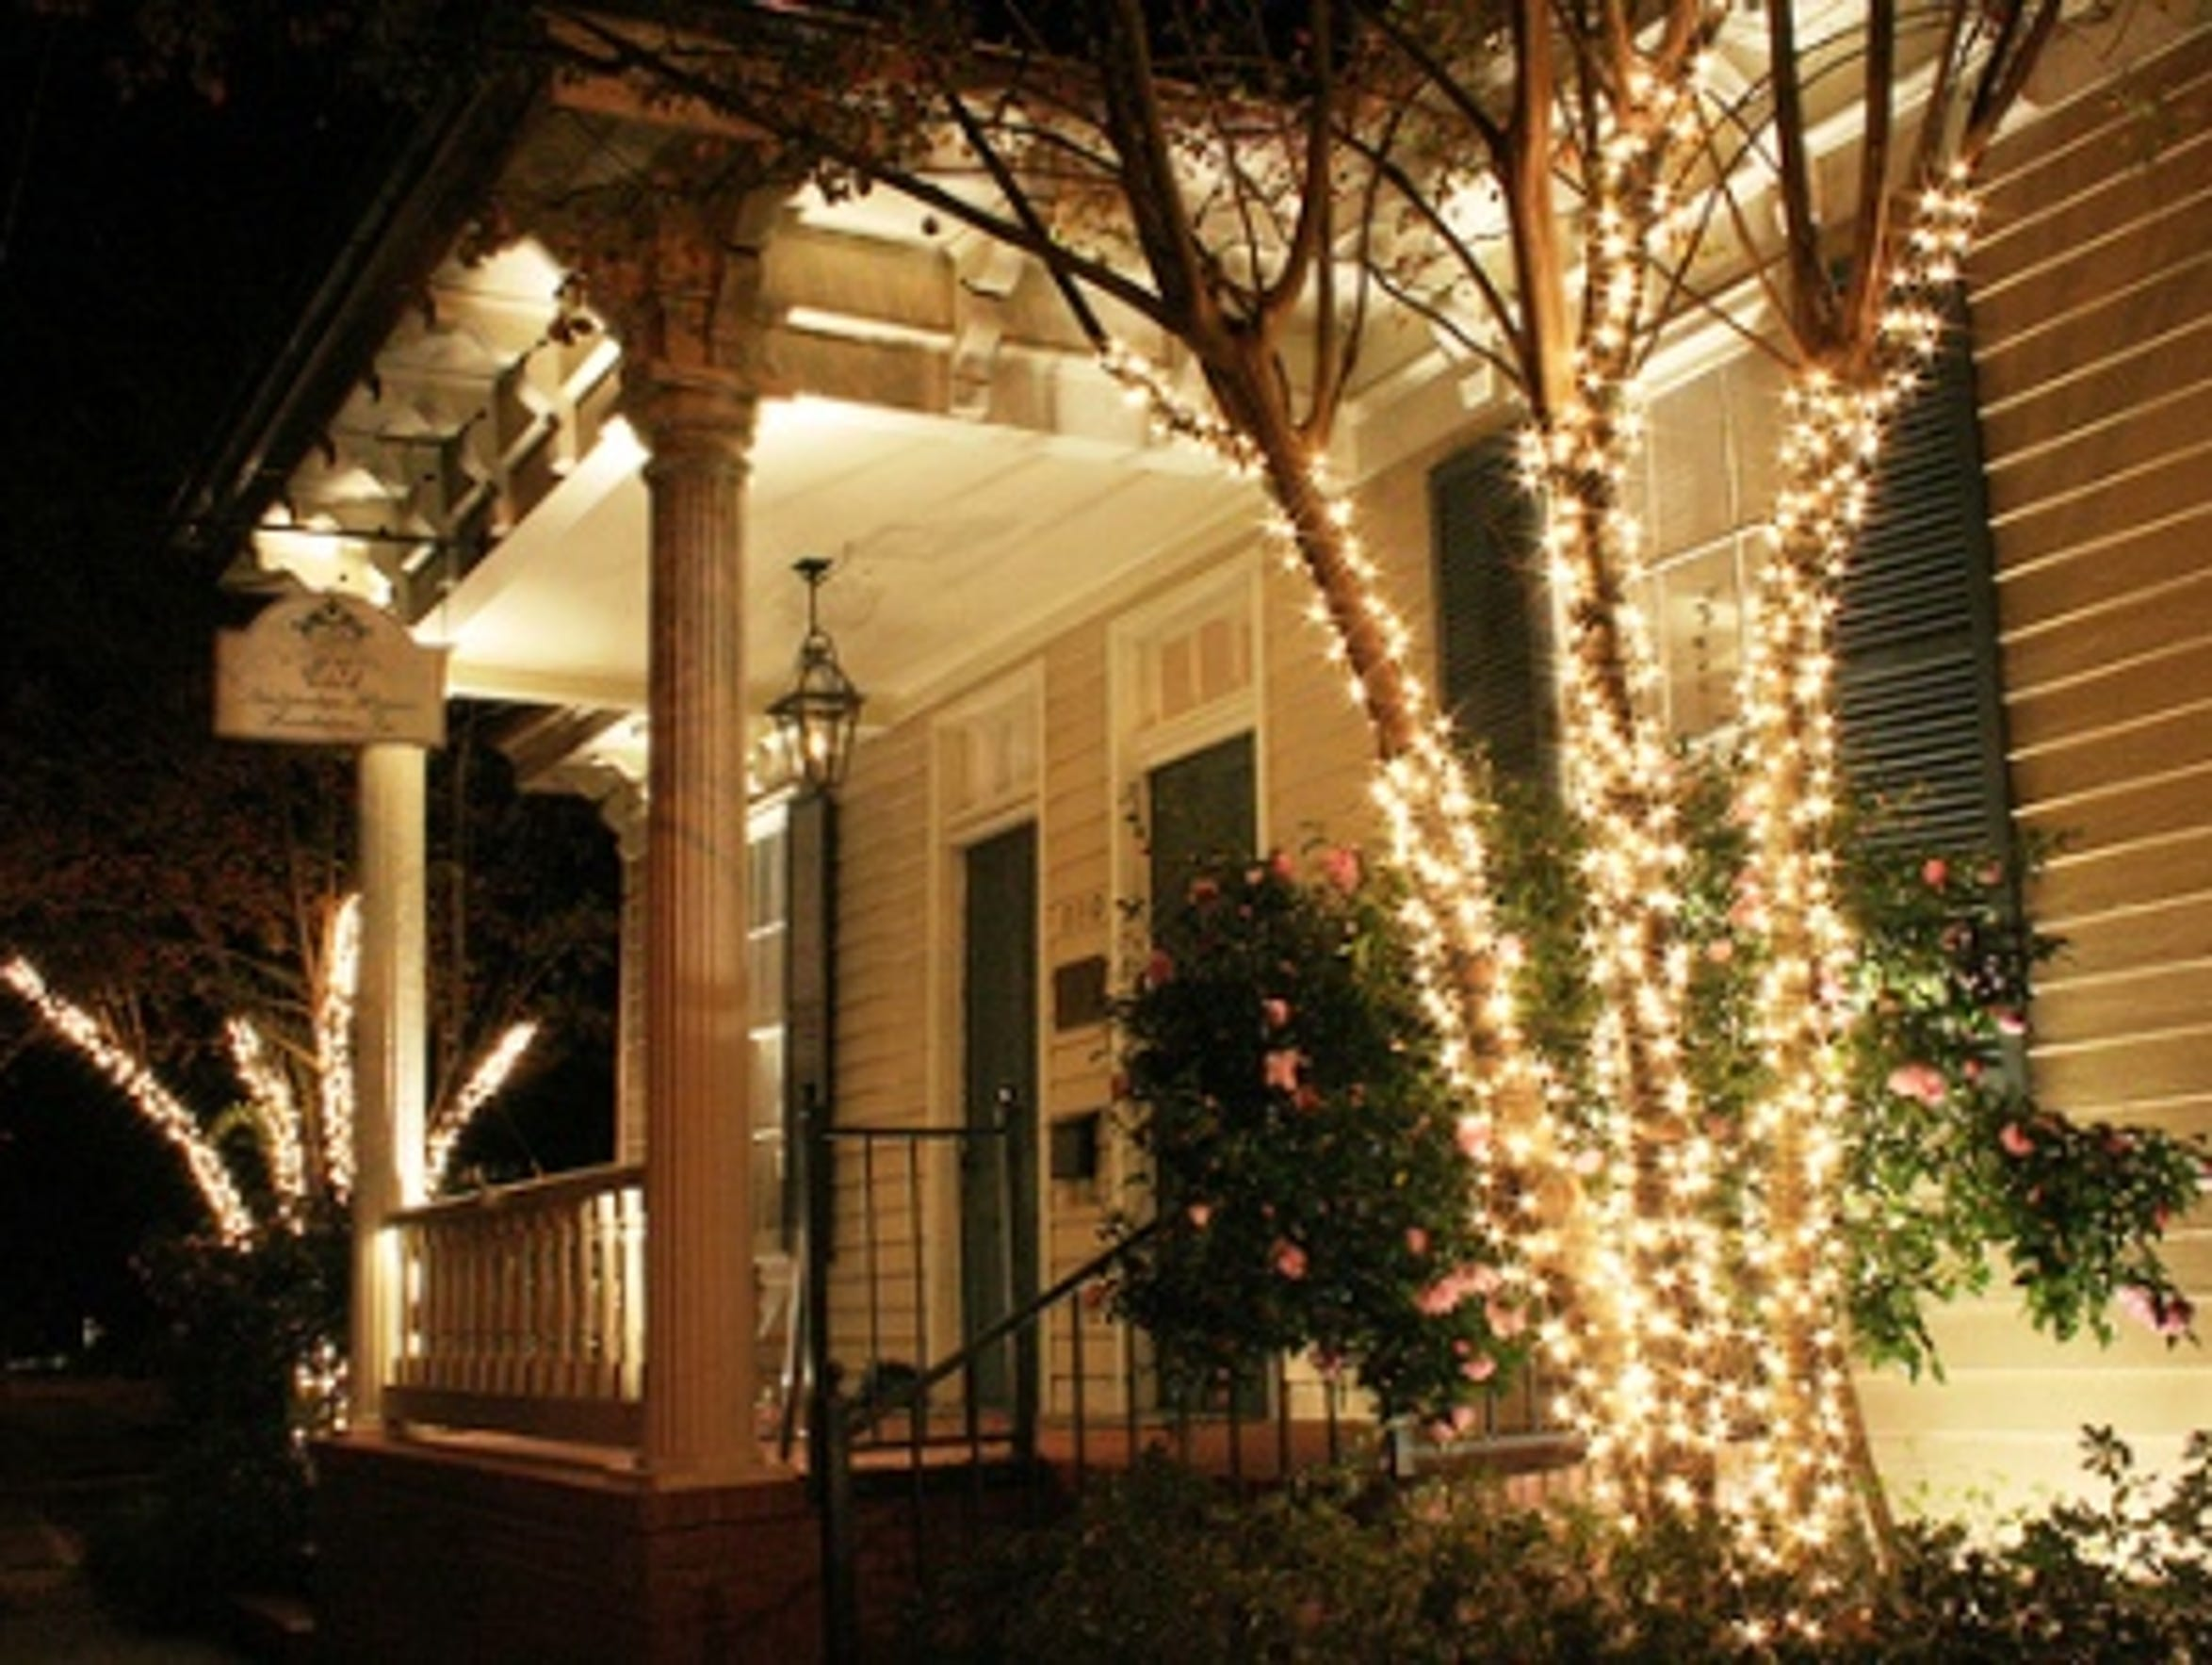 Cunningham Law Office is among the stops on Christmas on the Cane home tour, on of several on the Natchitoches Historic Foundation Christmas Tour of Homes this December.